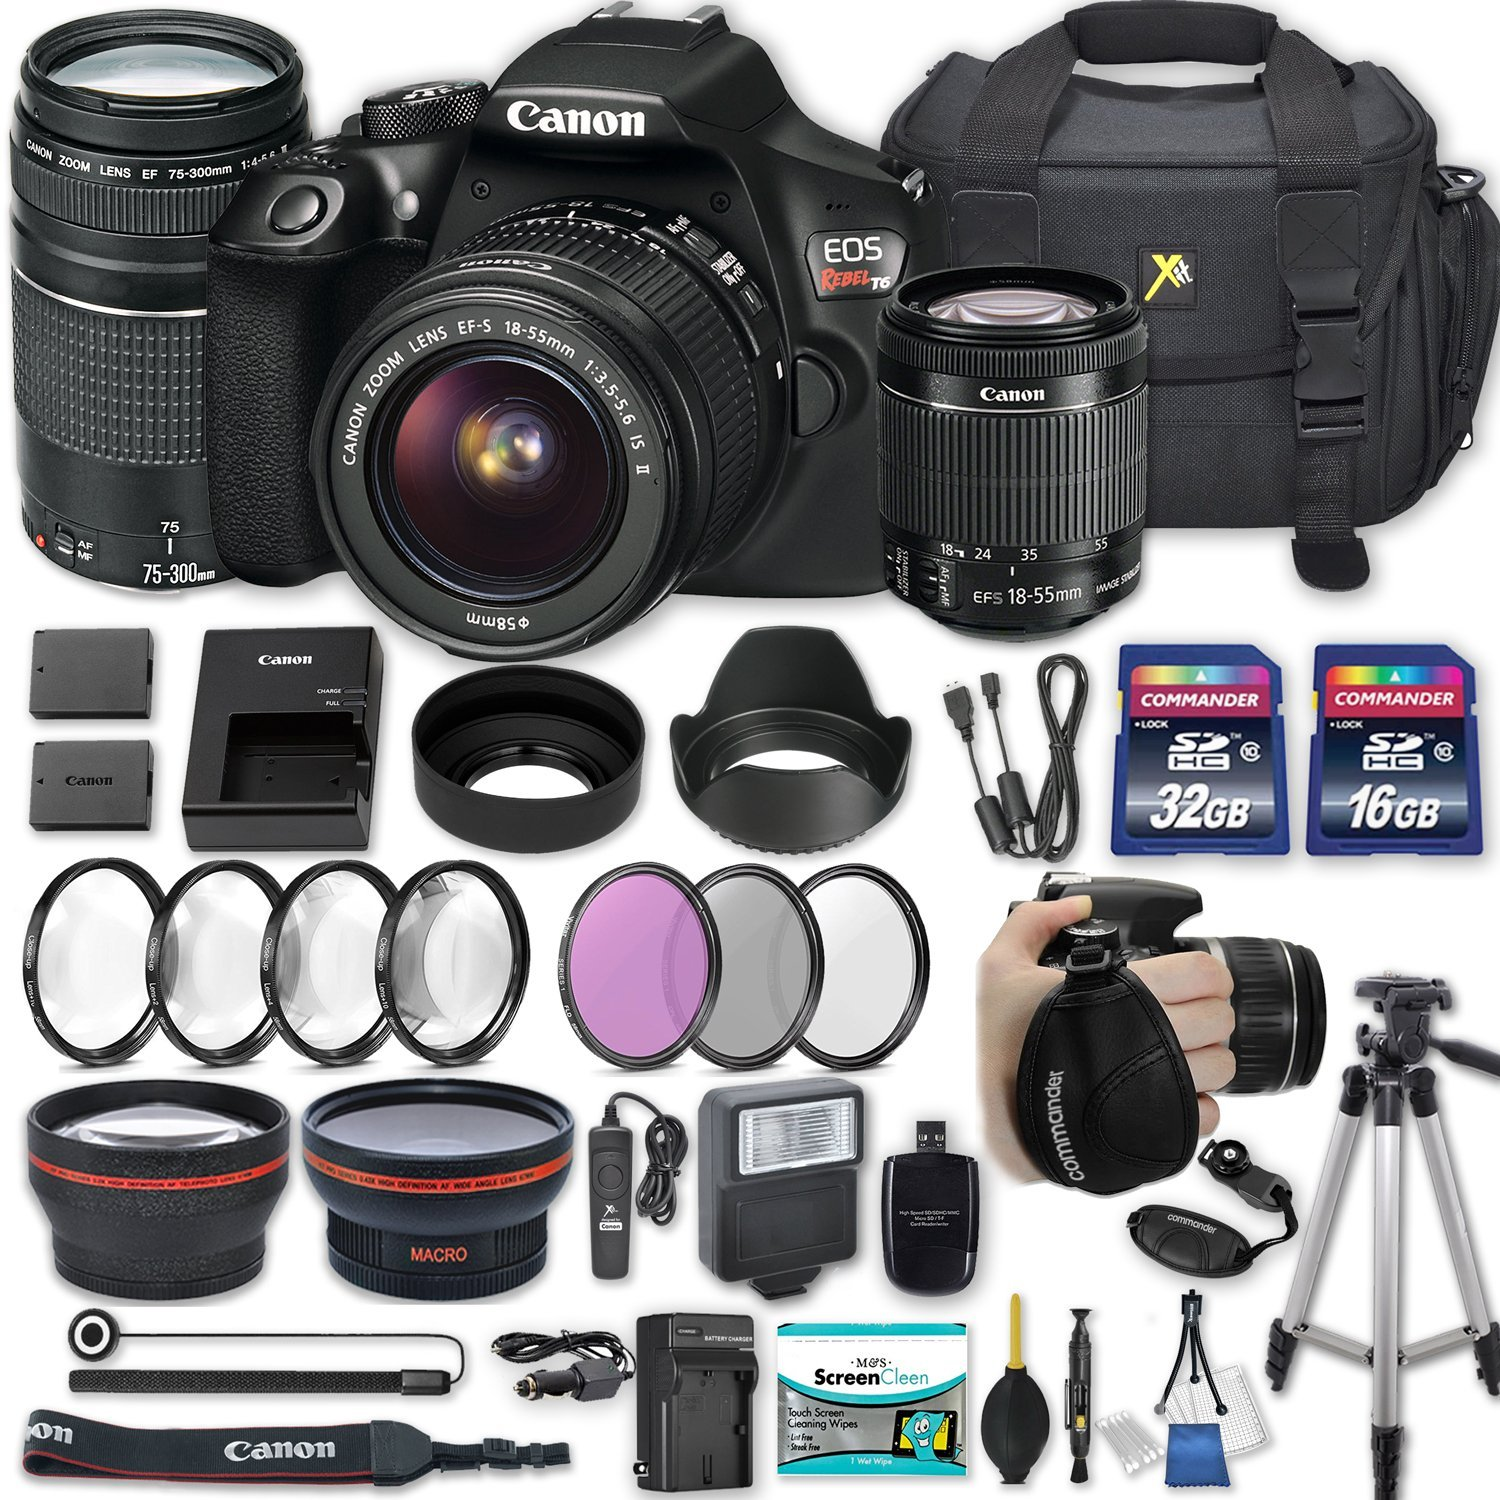 Canon EOS Rebel T6 DSLR Camera with EF-S 18-55mm f/3.5-5.6